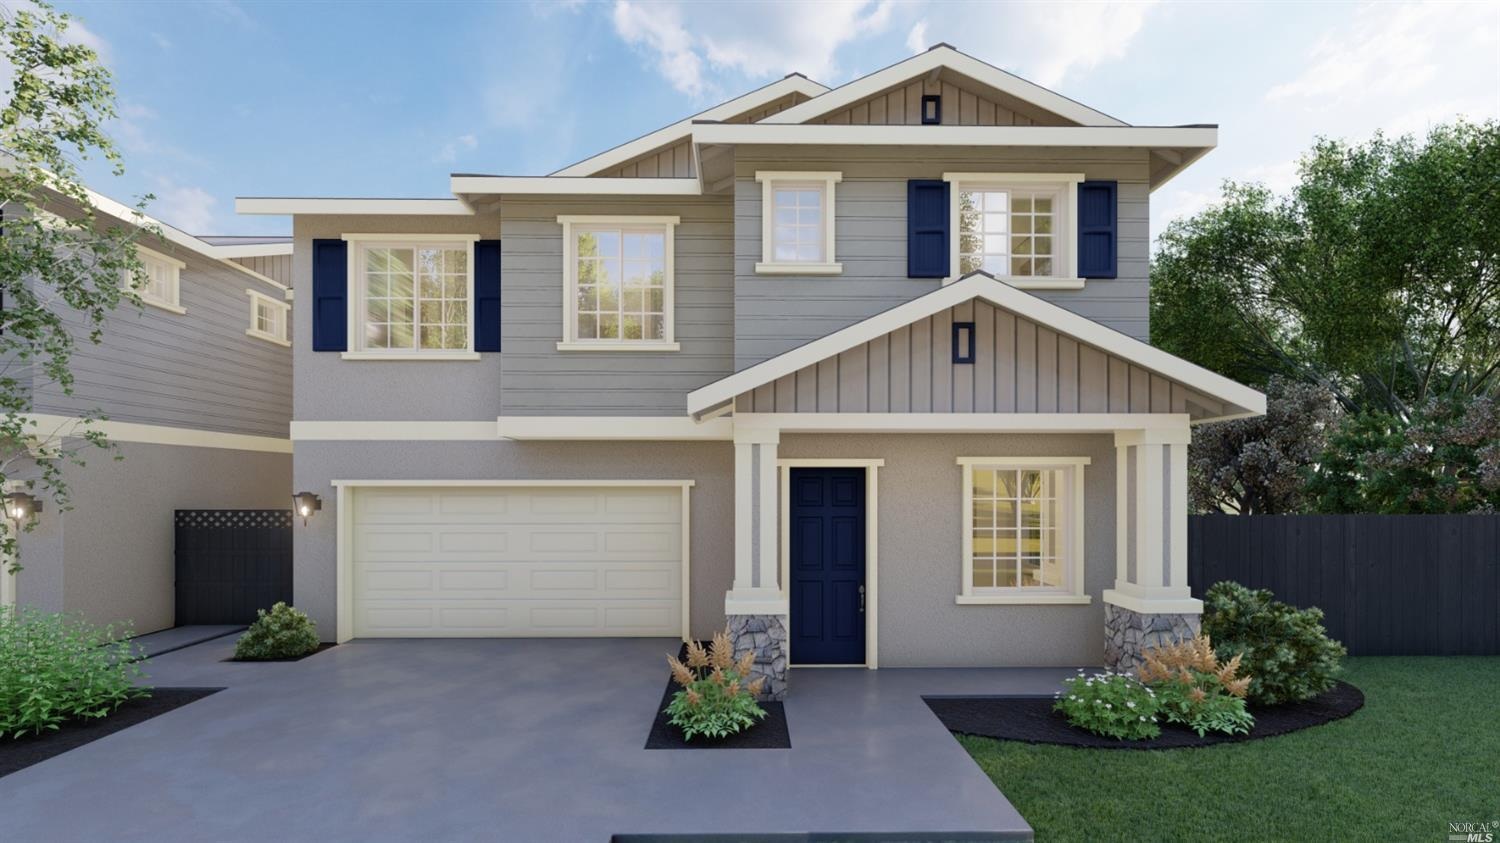 Ivy Crossing is a brand new collection of 111 single family homes ranging from 2,152 to 2,528 Square